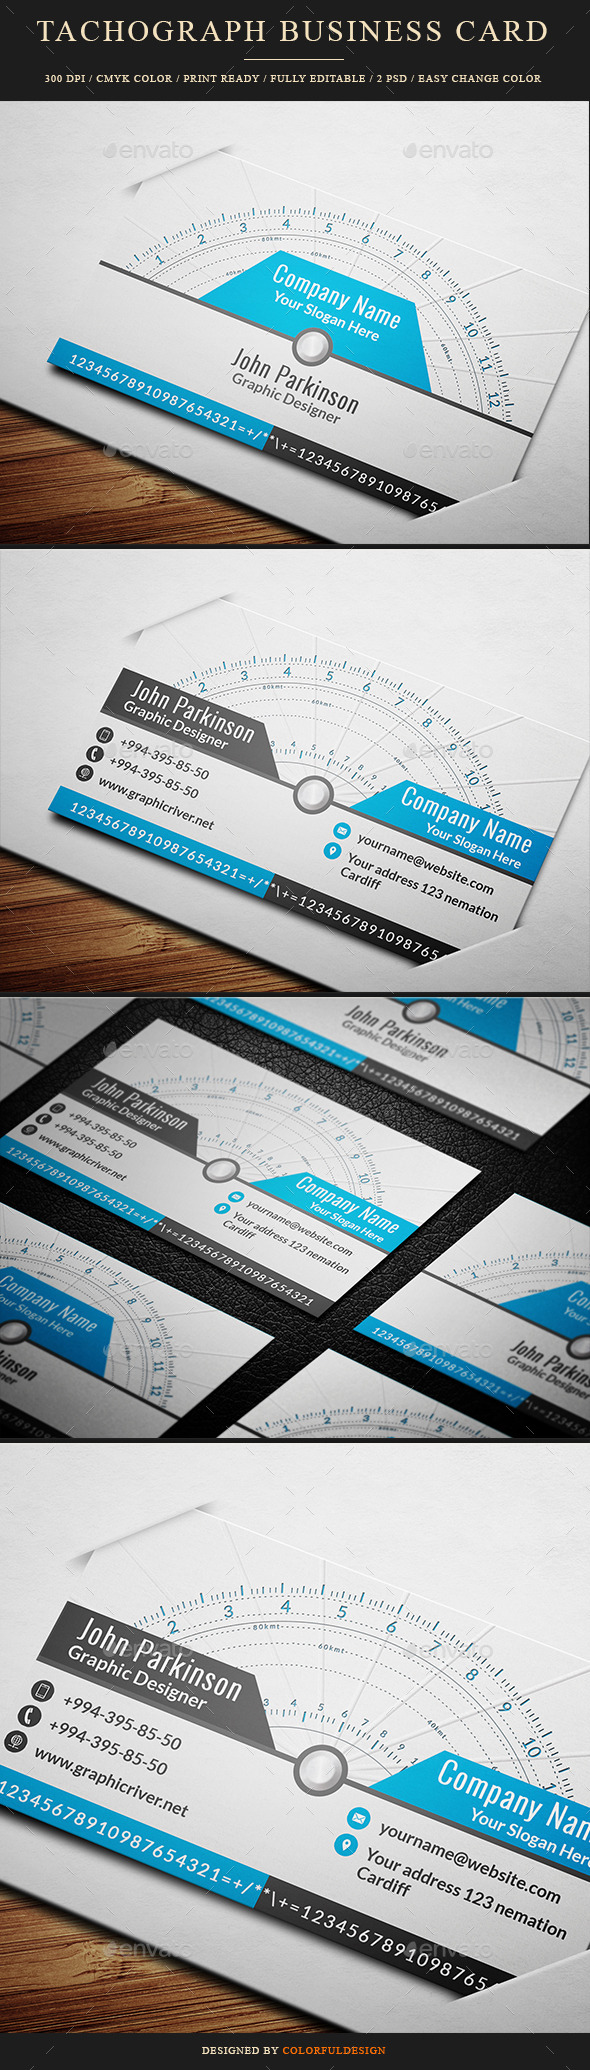 Tachograph Business Card - Creative Business Cards